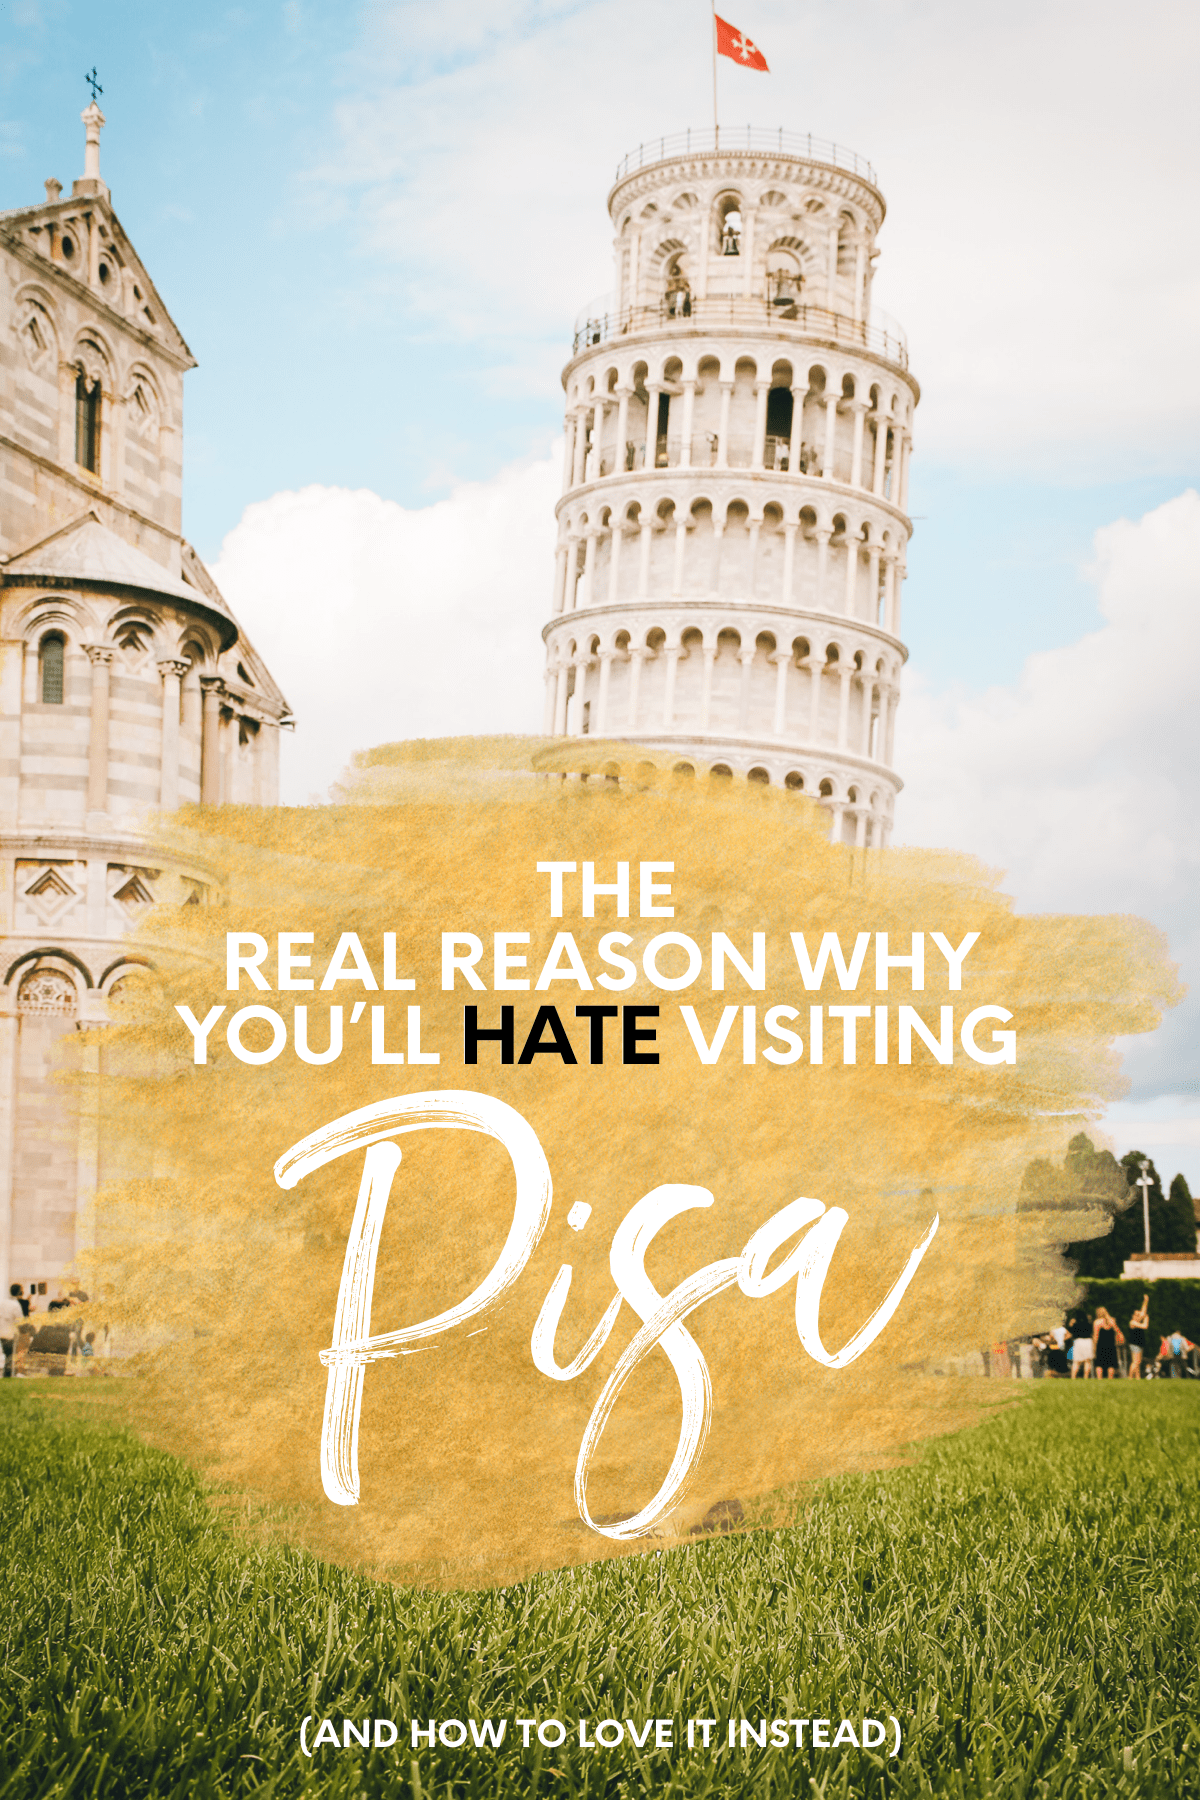 The Real Reason Why You'll Hate Visiting Pisa, Italy